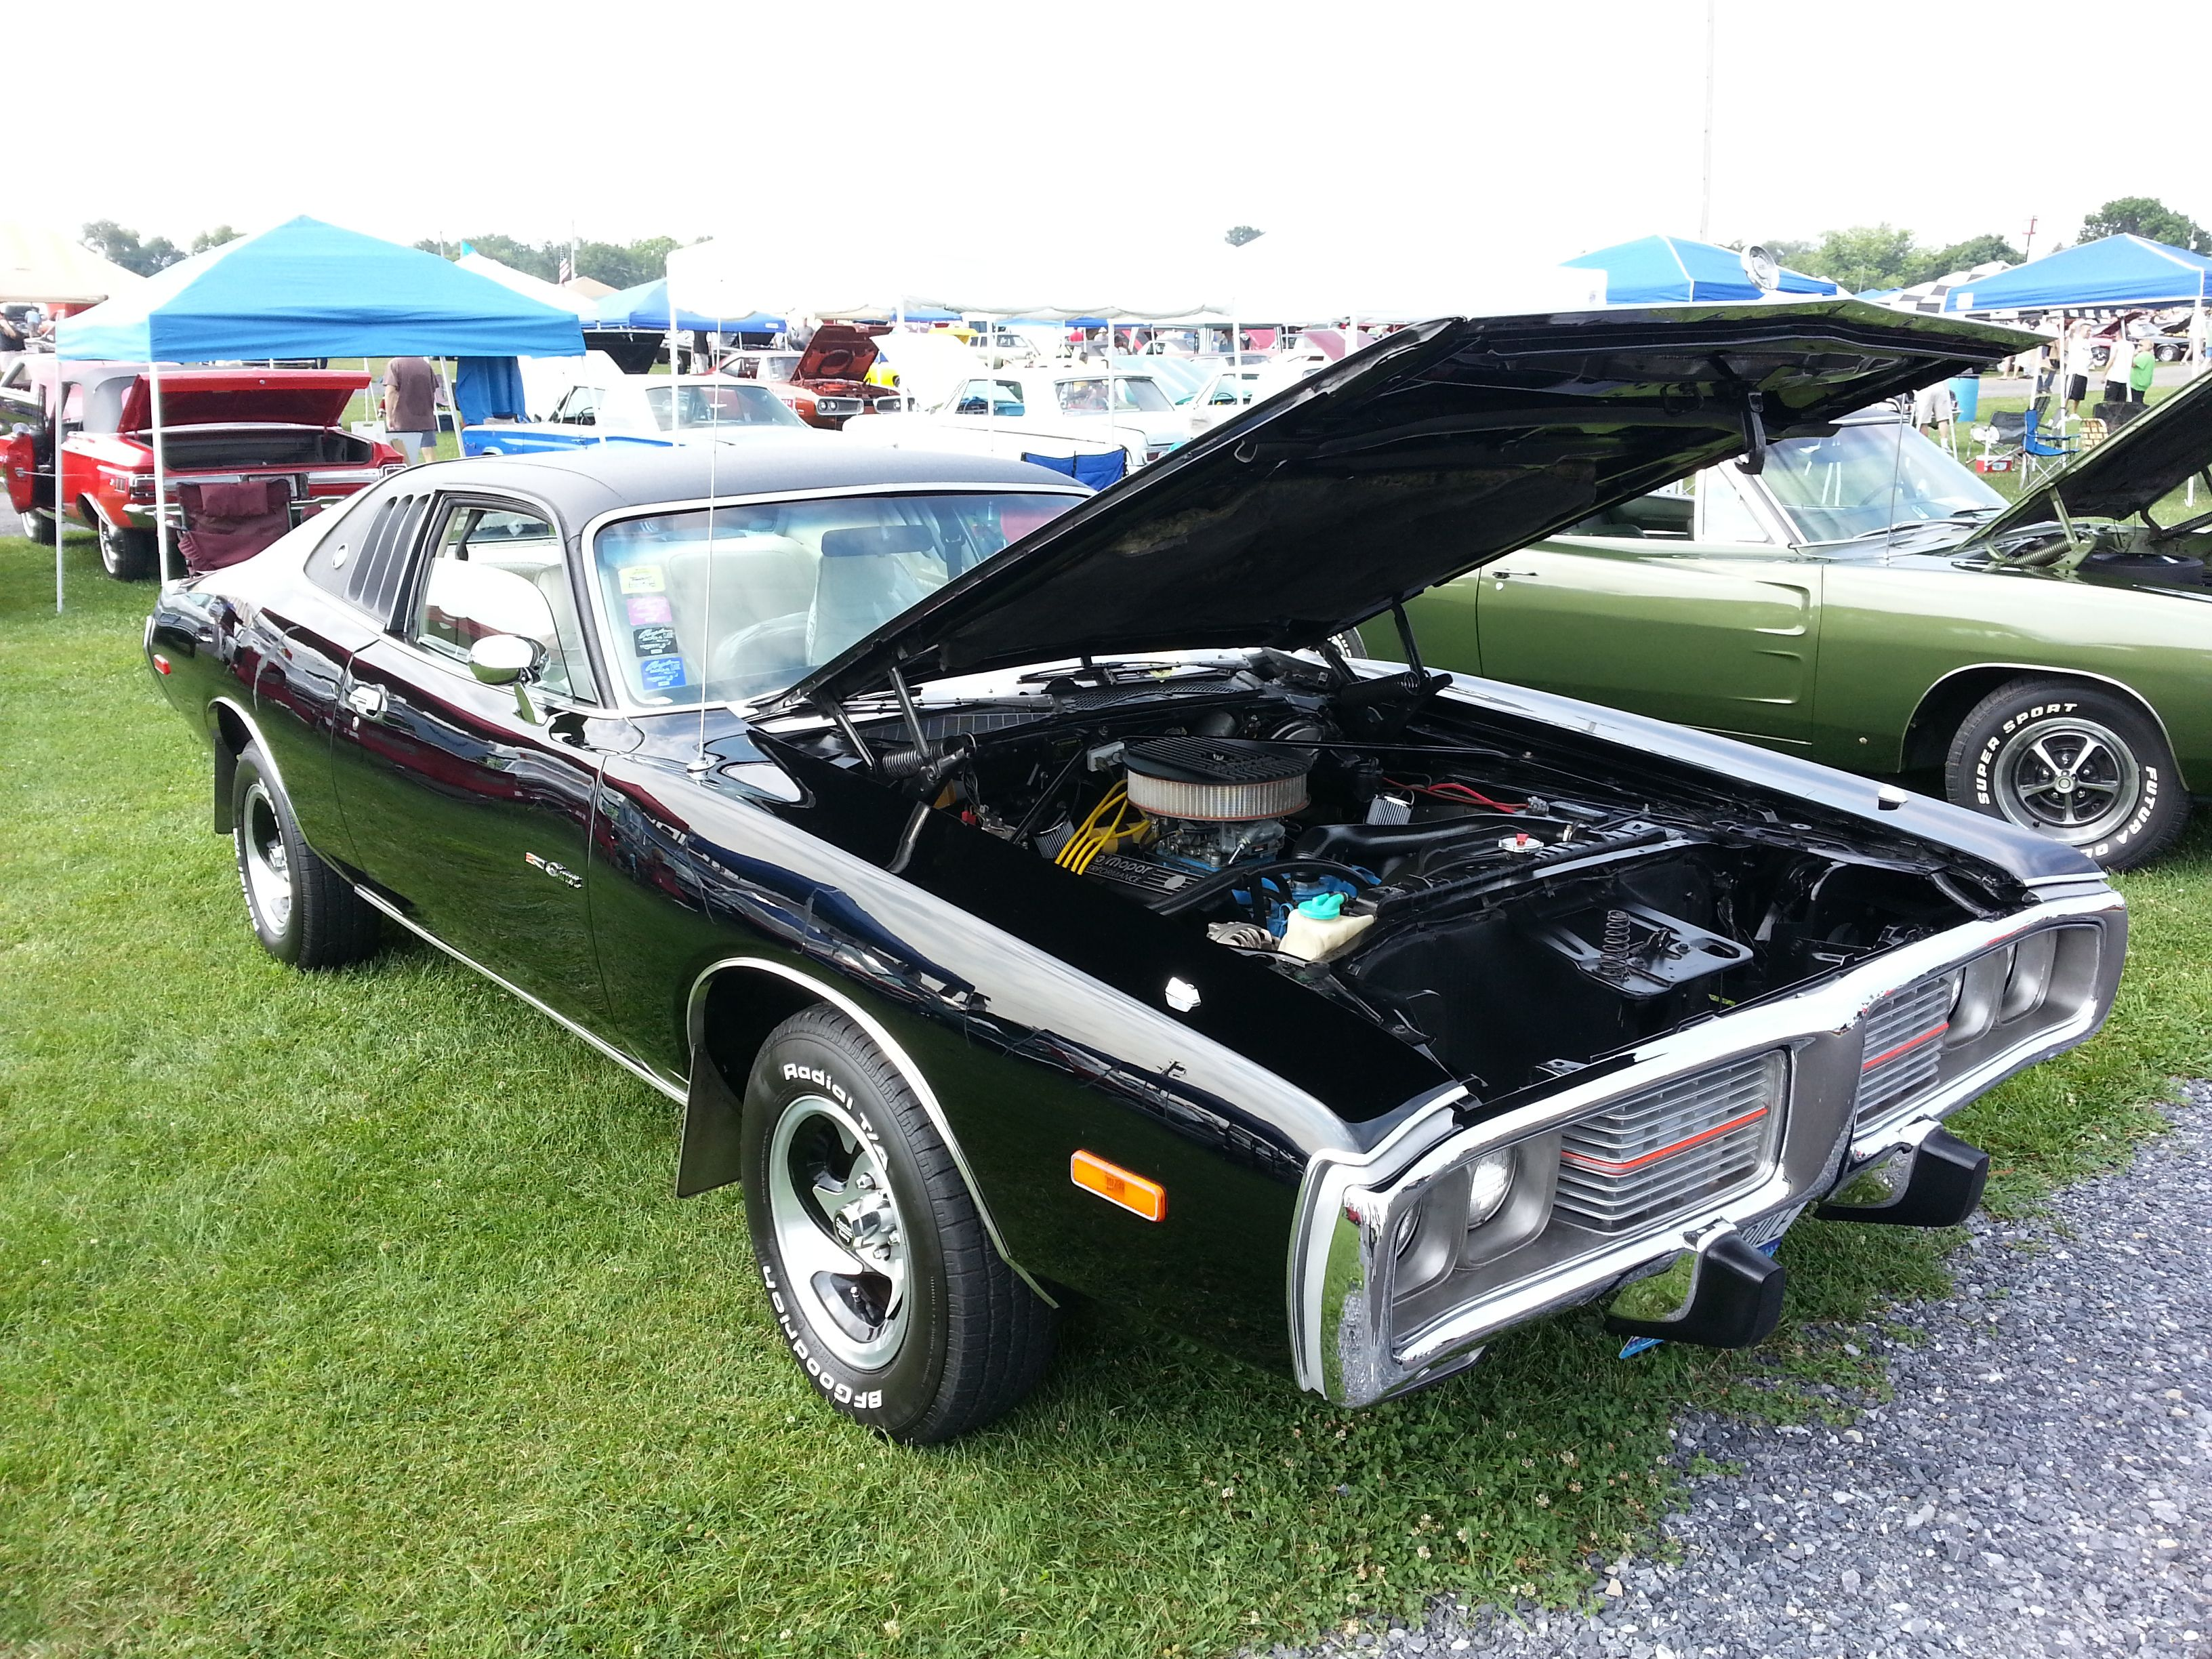 Chrysler Car Show at Carlisle, Pennsylvania 2014 1974 Dodge ...